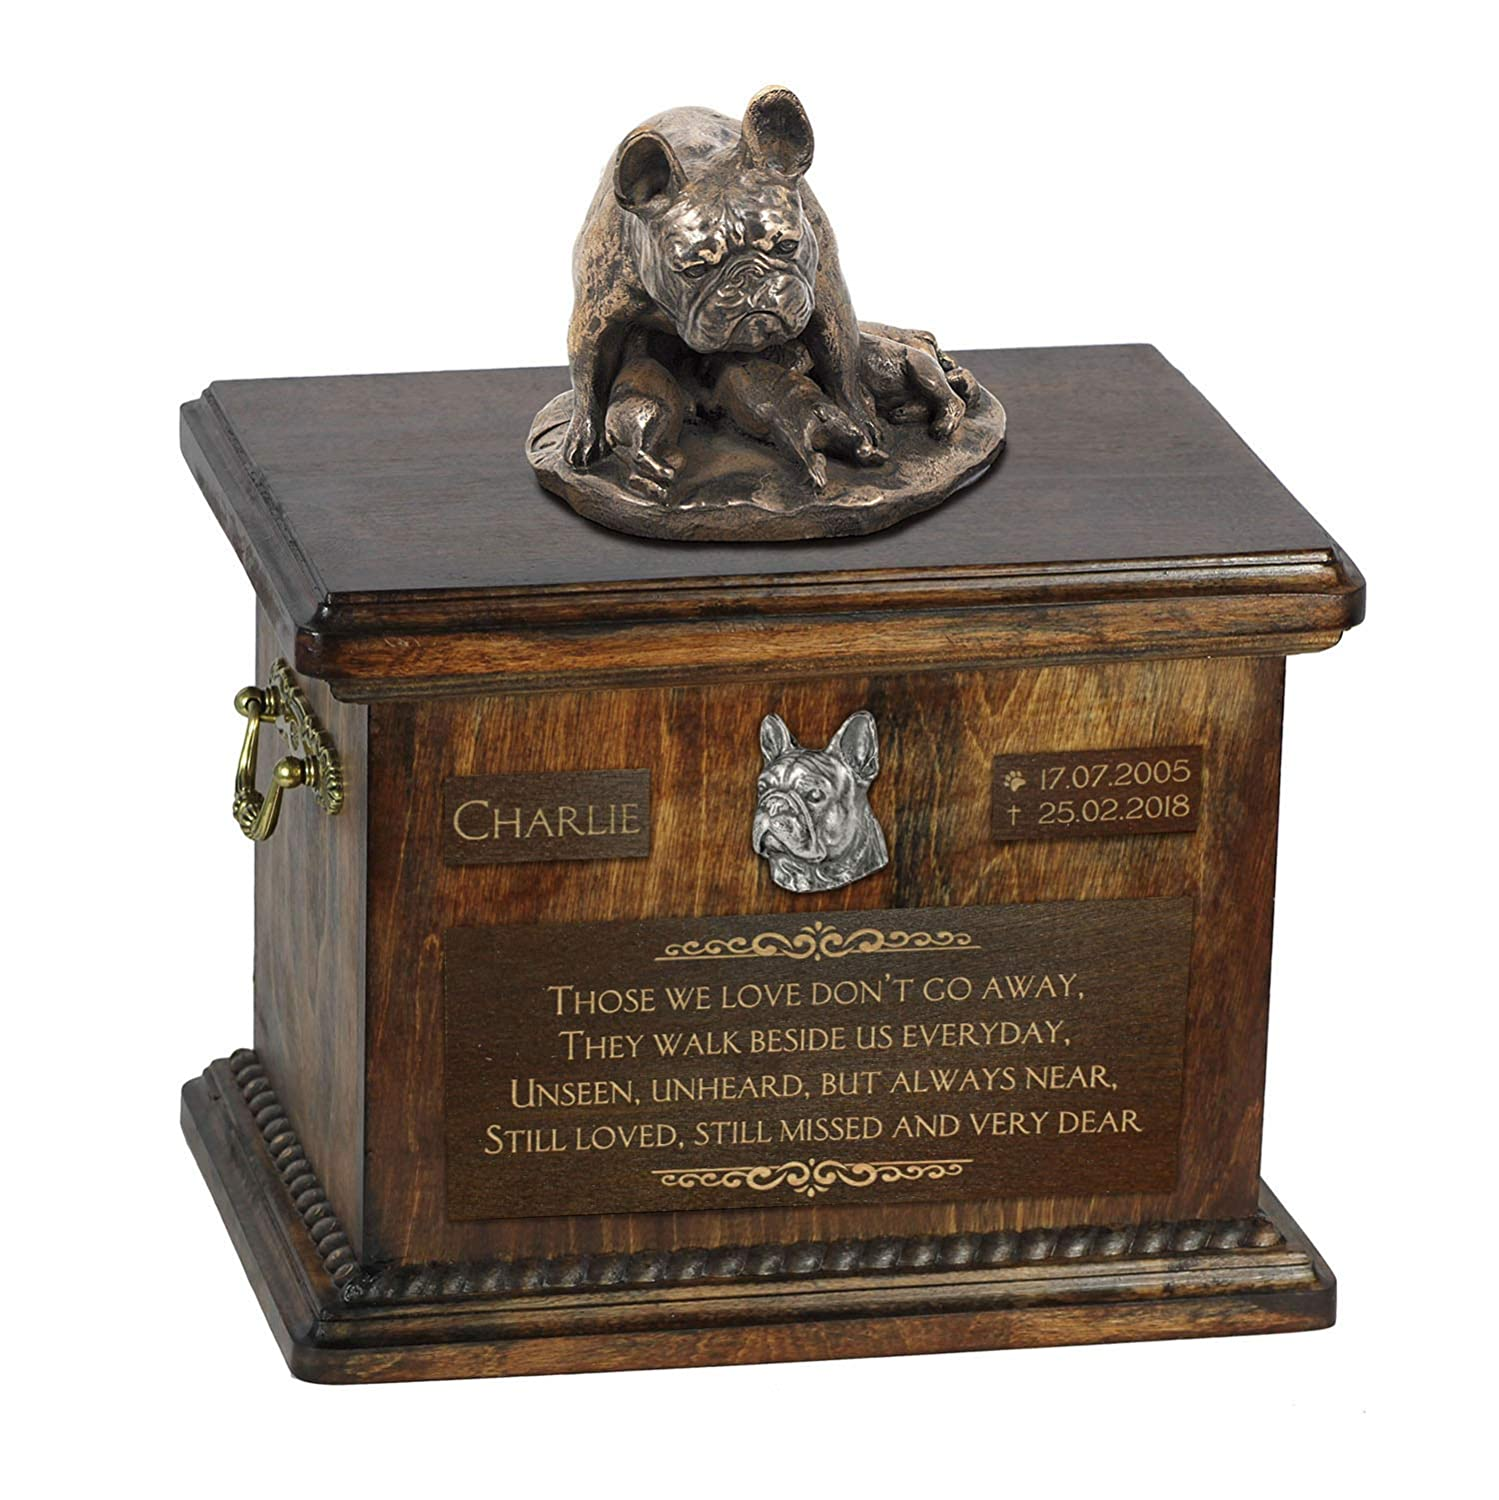 French Bulldog mama 2, Urn for Dog Ashes Memorial with Statue, Pet's Name and Quote ArtDog Personalized